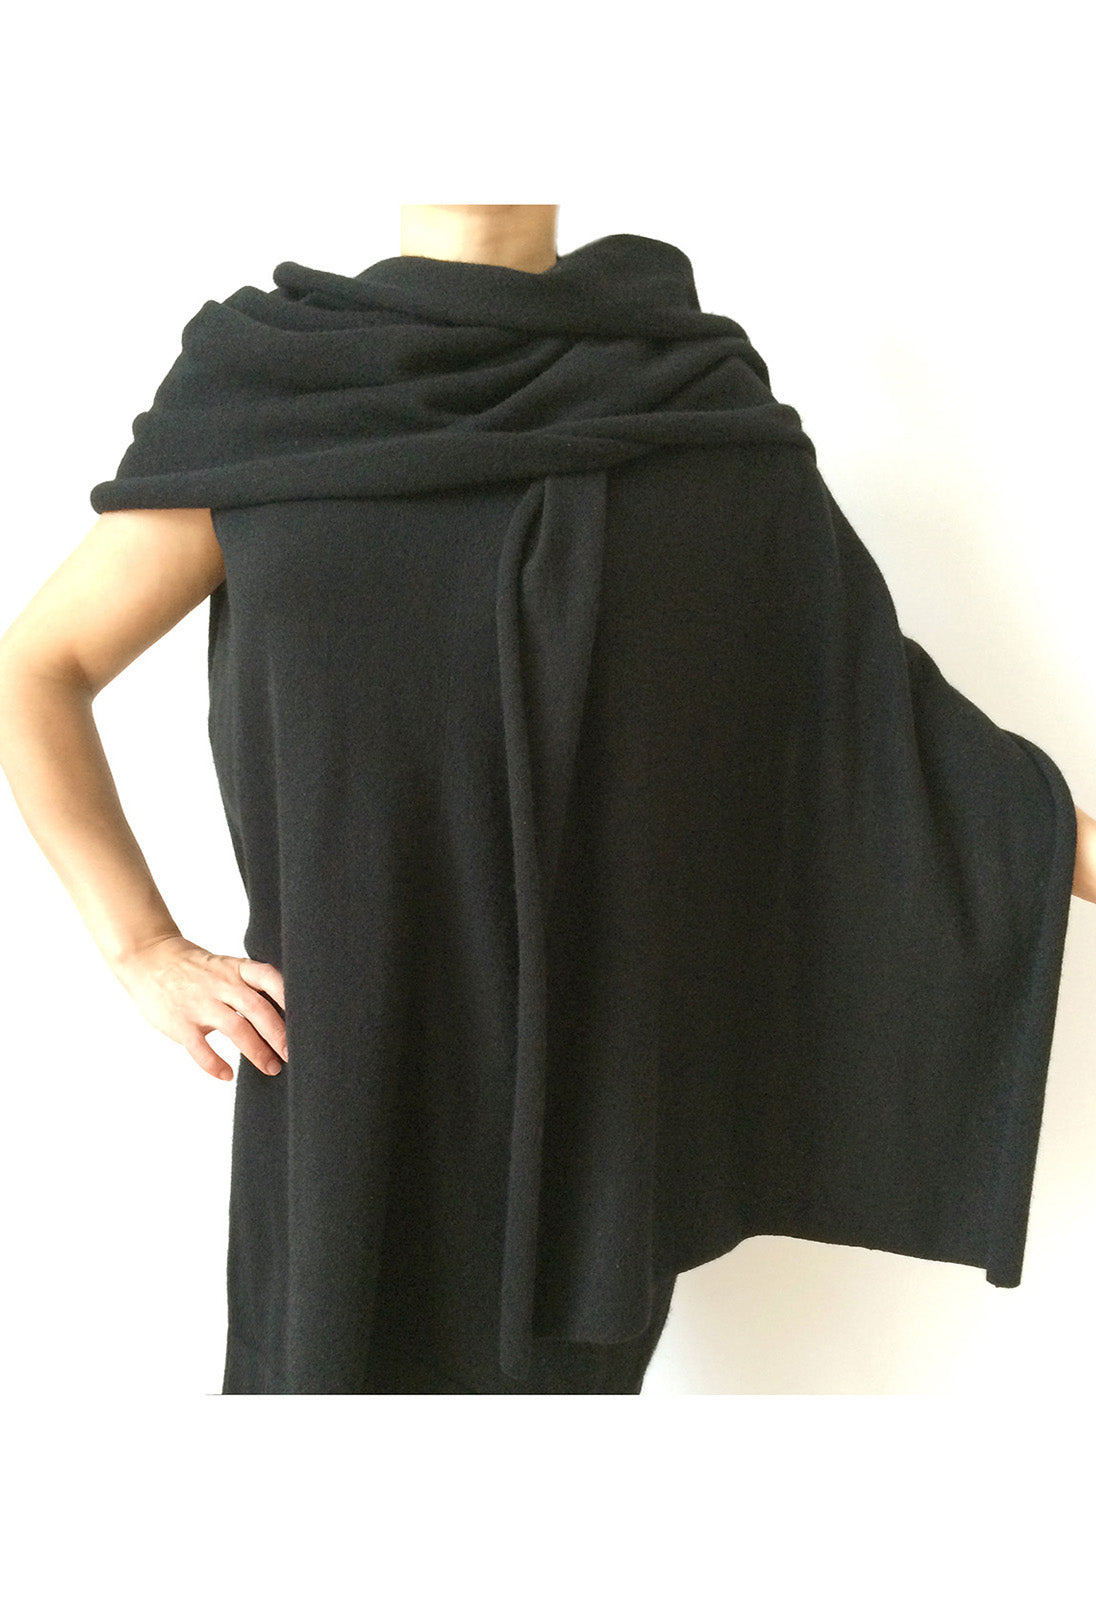 Large plain scarf shawl